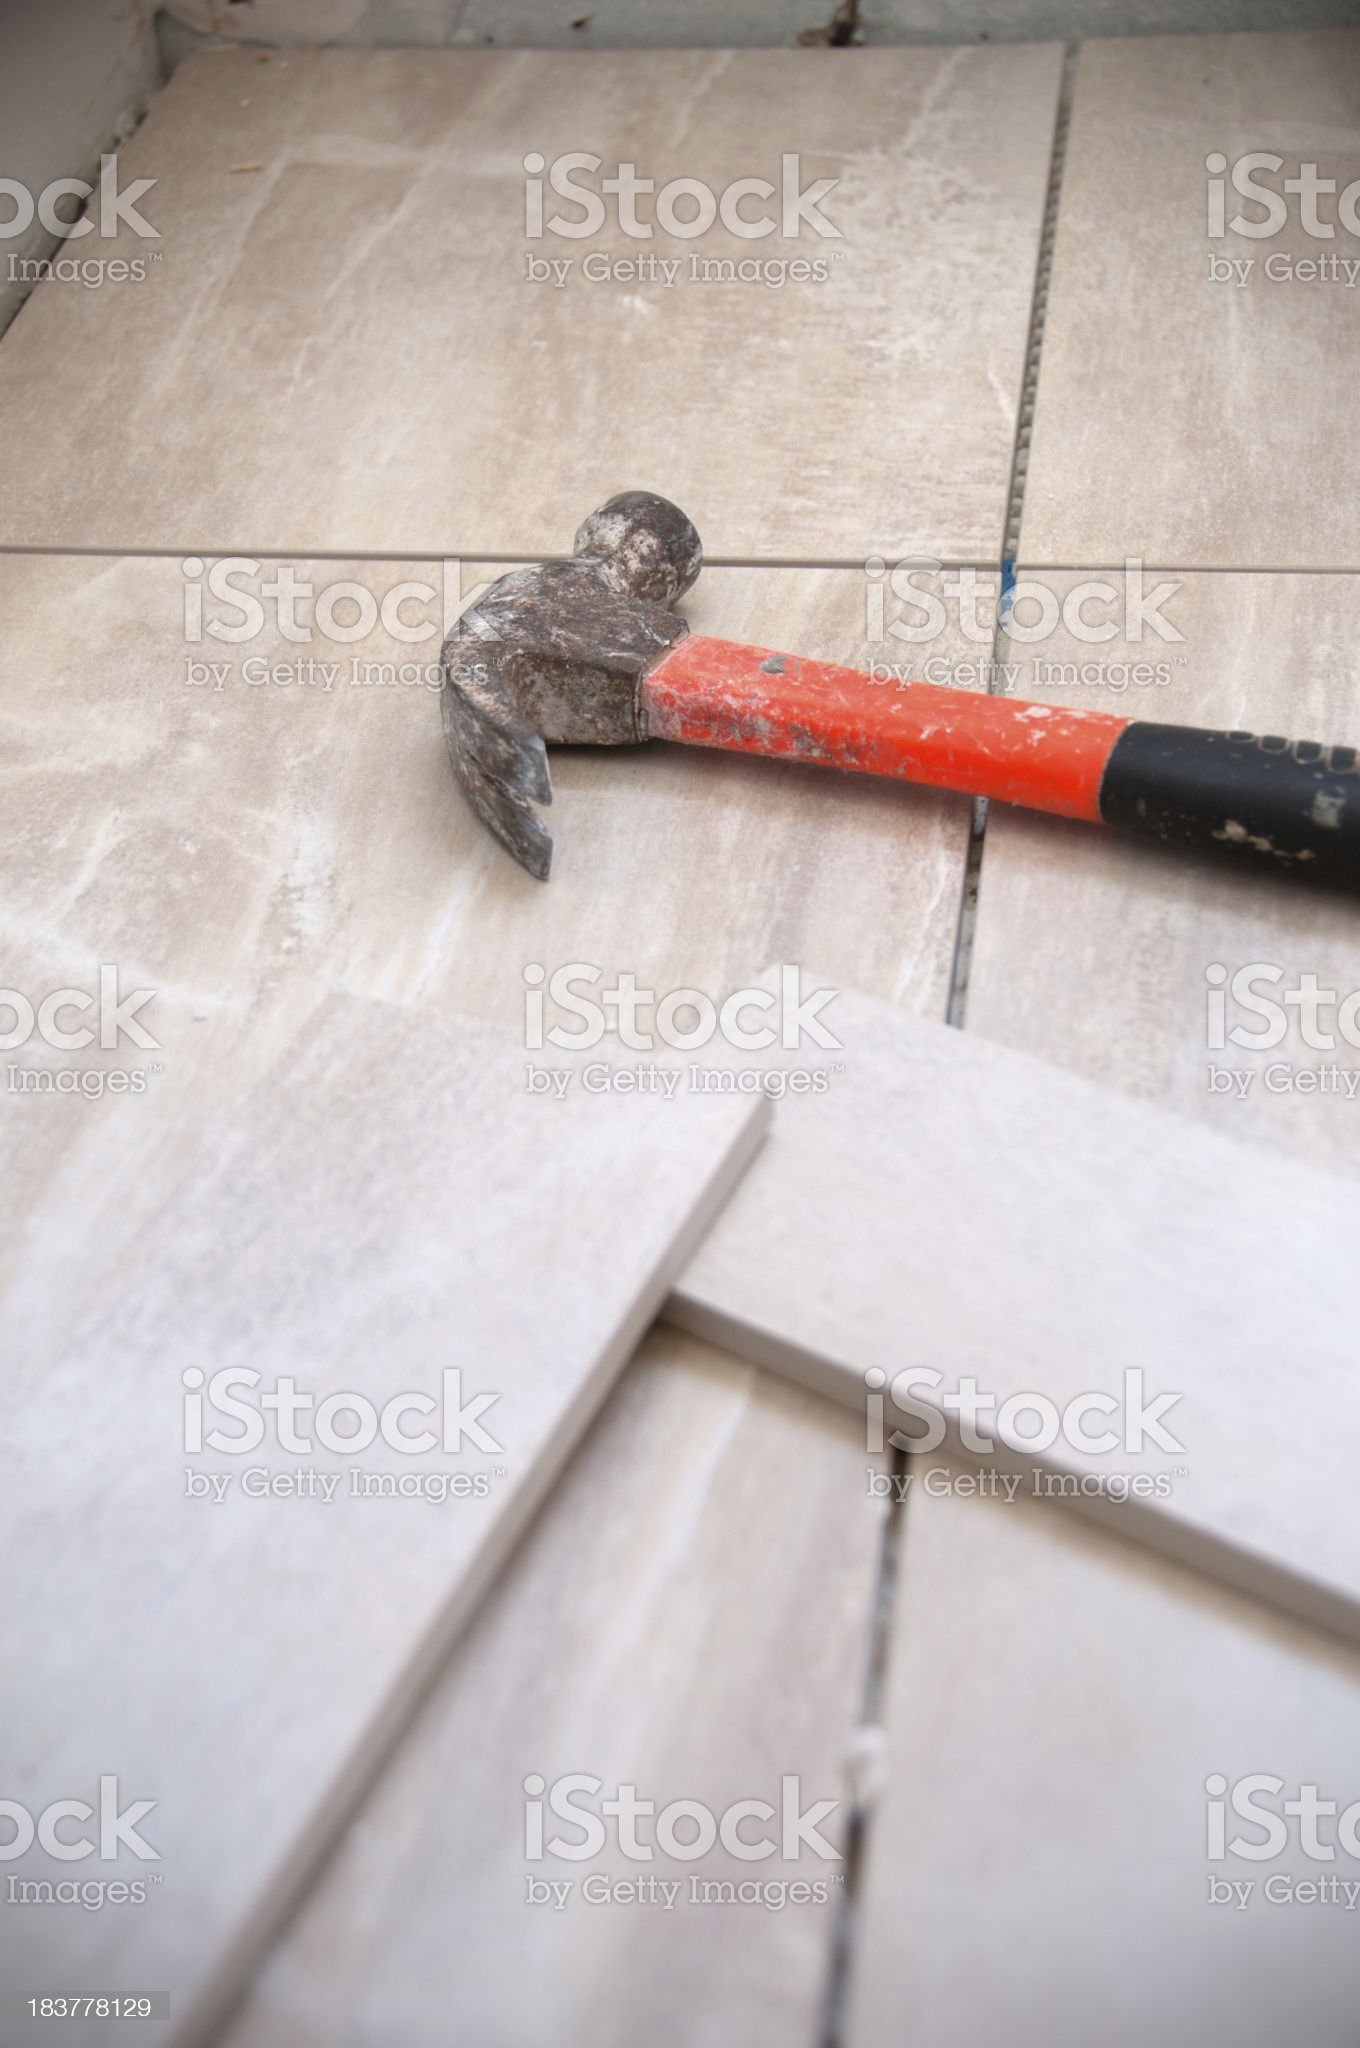 Home Renovation, Tiling Process: Tile pieces and Hammer royalty-free stock photo